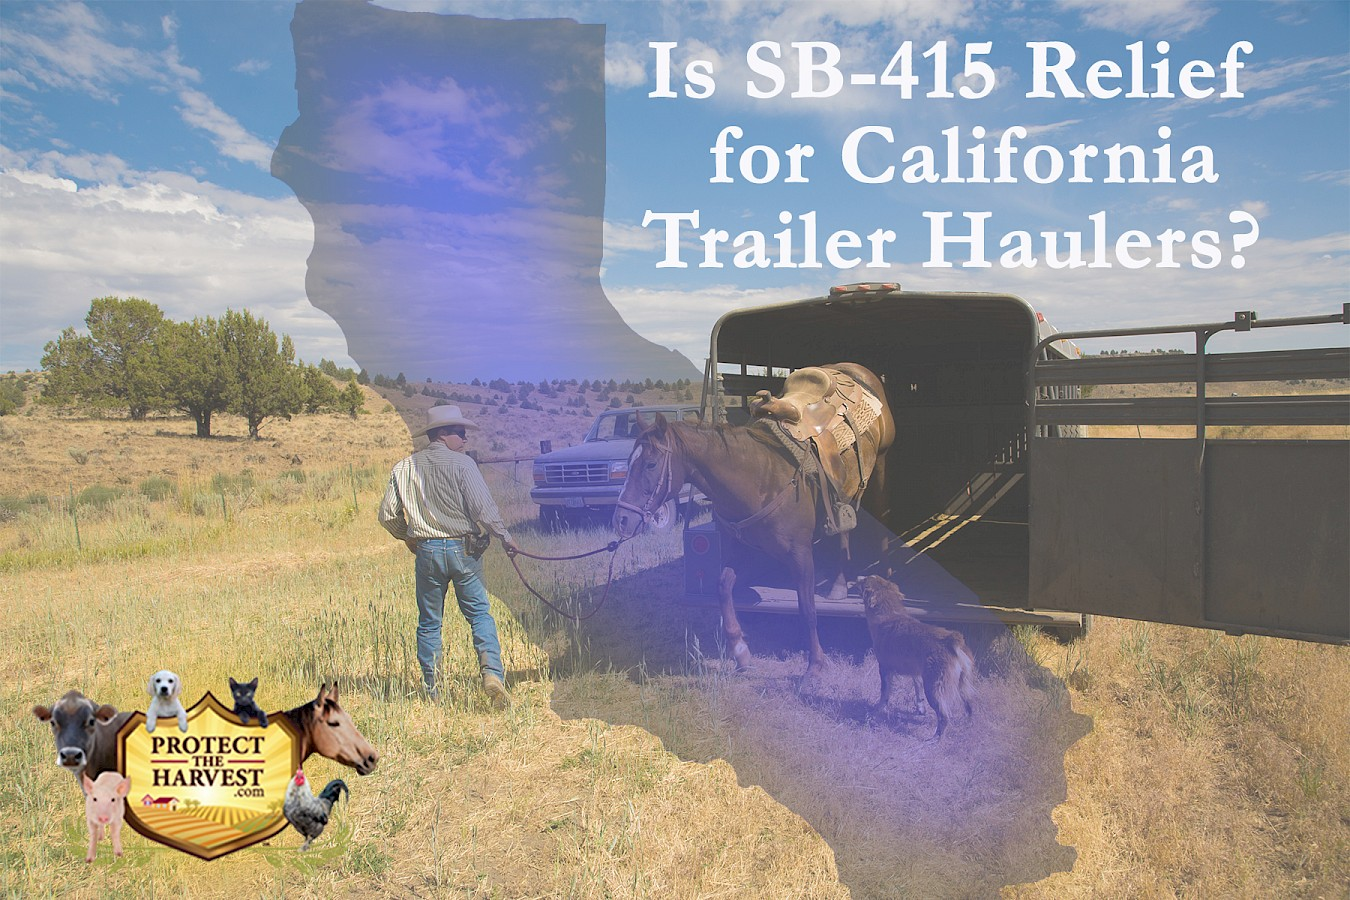 Relief for California livestock, horse, boat, ATV, and other trailer haulers.